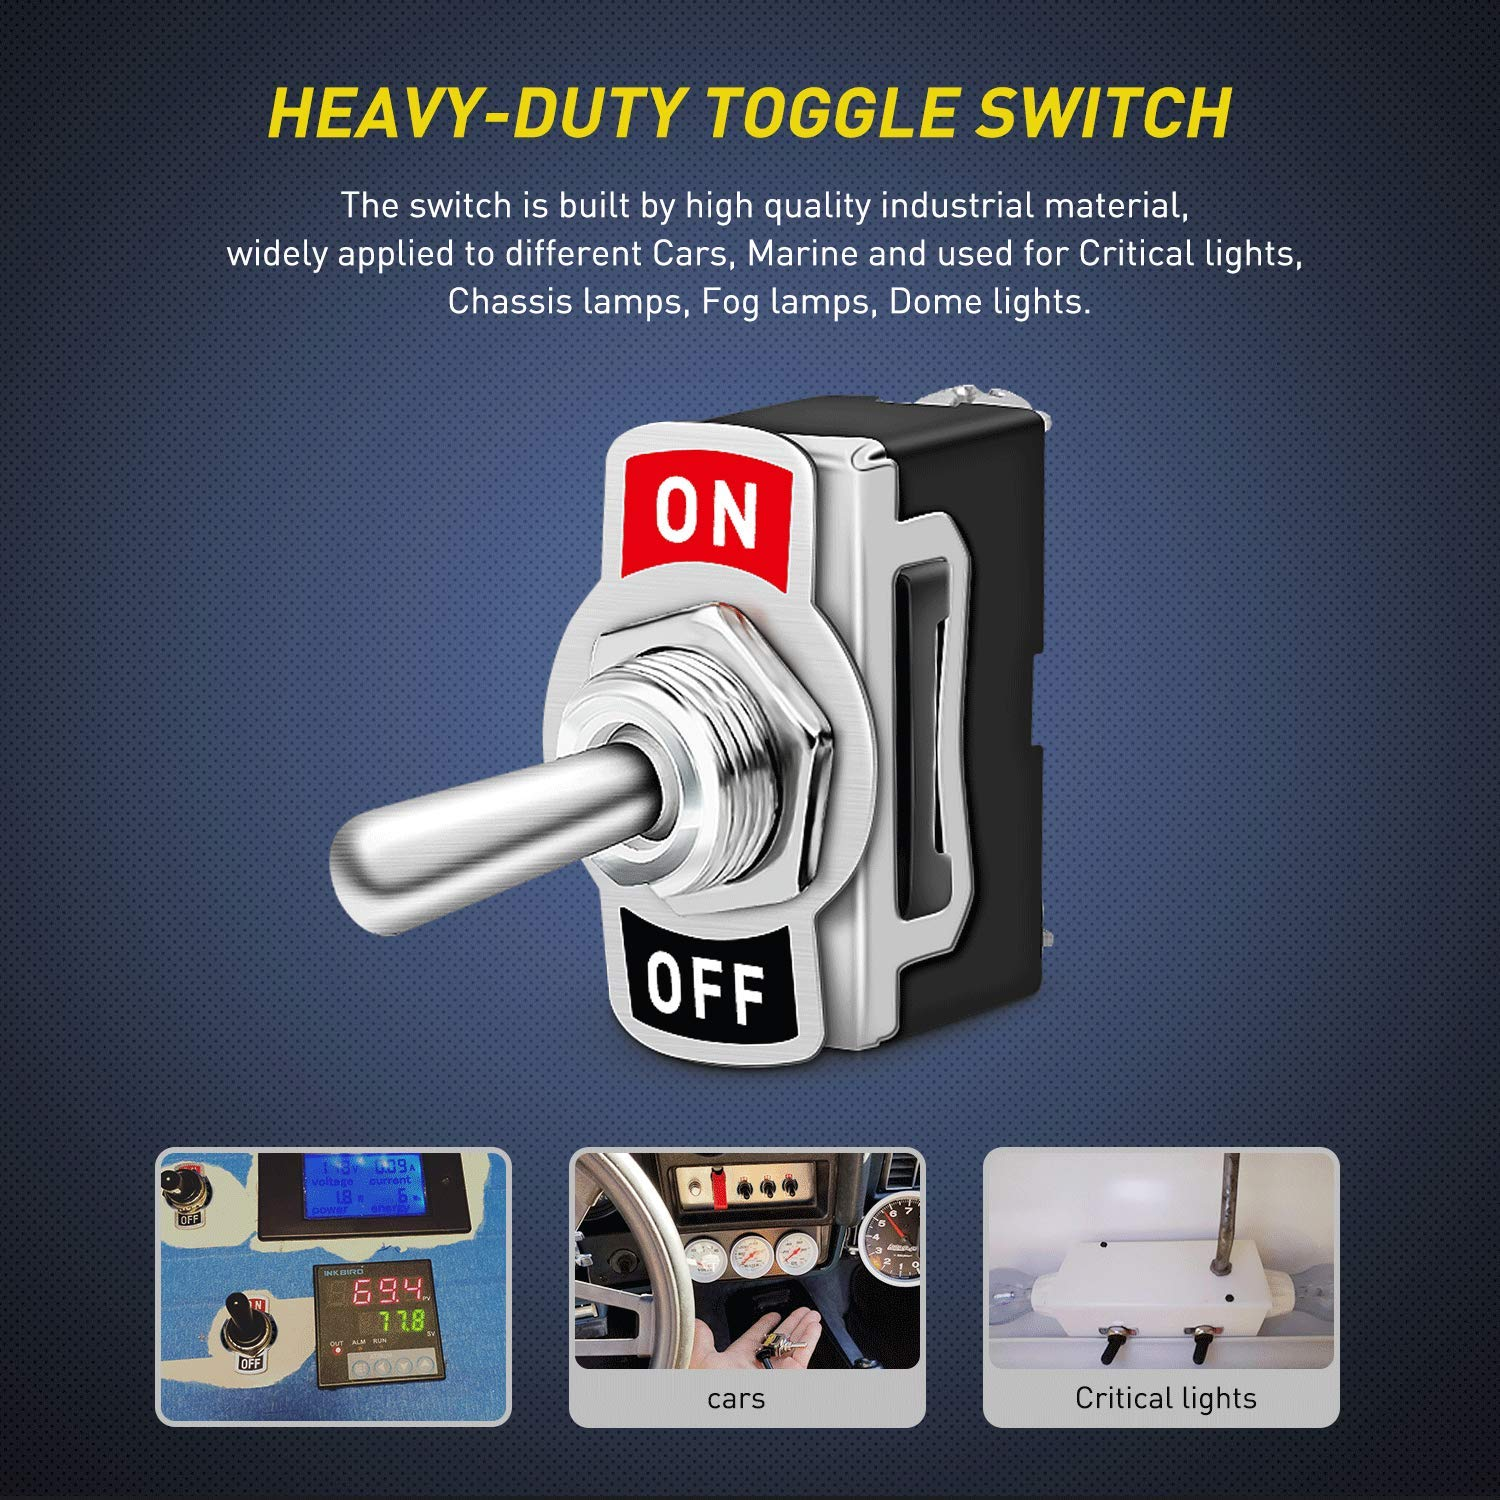 Nilight Heavy Duty Rocker Toggle Switch 15a 250v 20a Spst Round All Electronics Corp 125v 2 Pin On Off Metal Bat Waterproof Boot Cap Cover 5 Pack